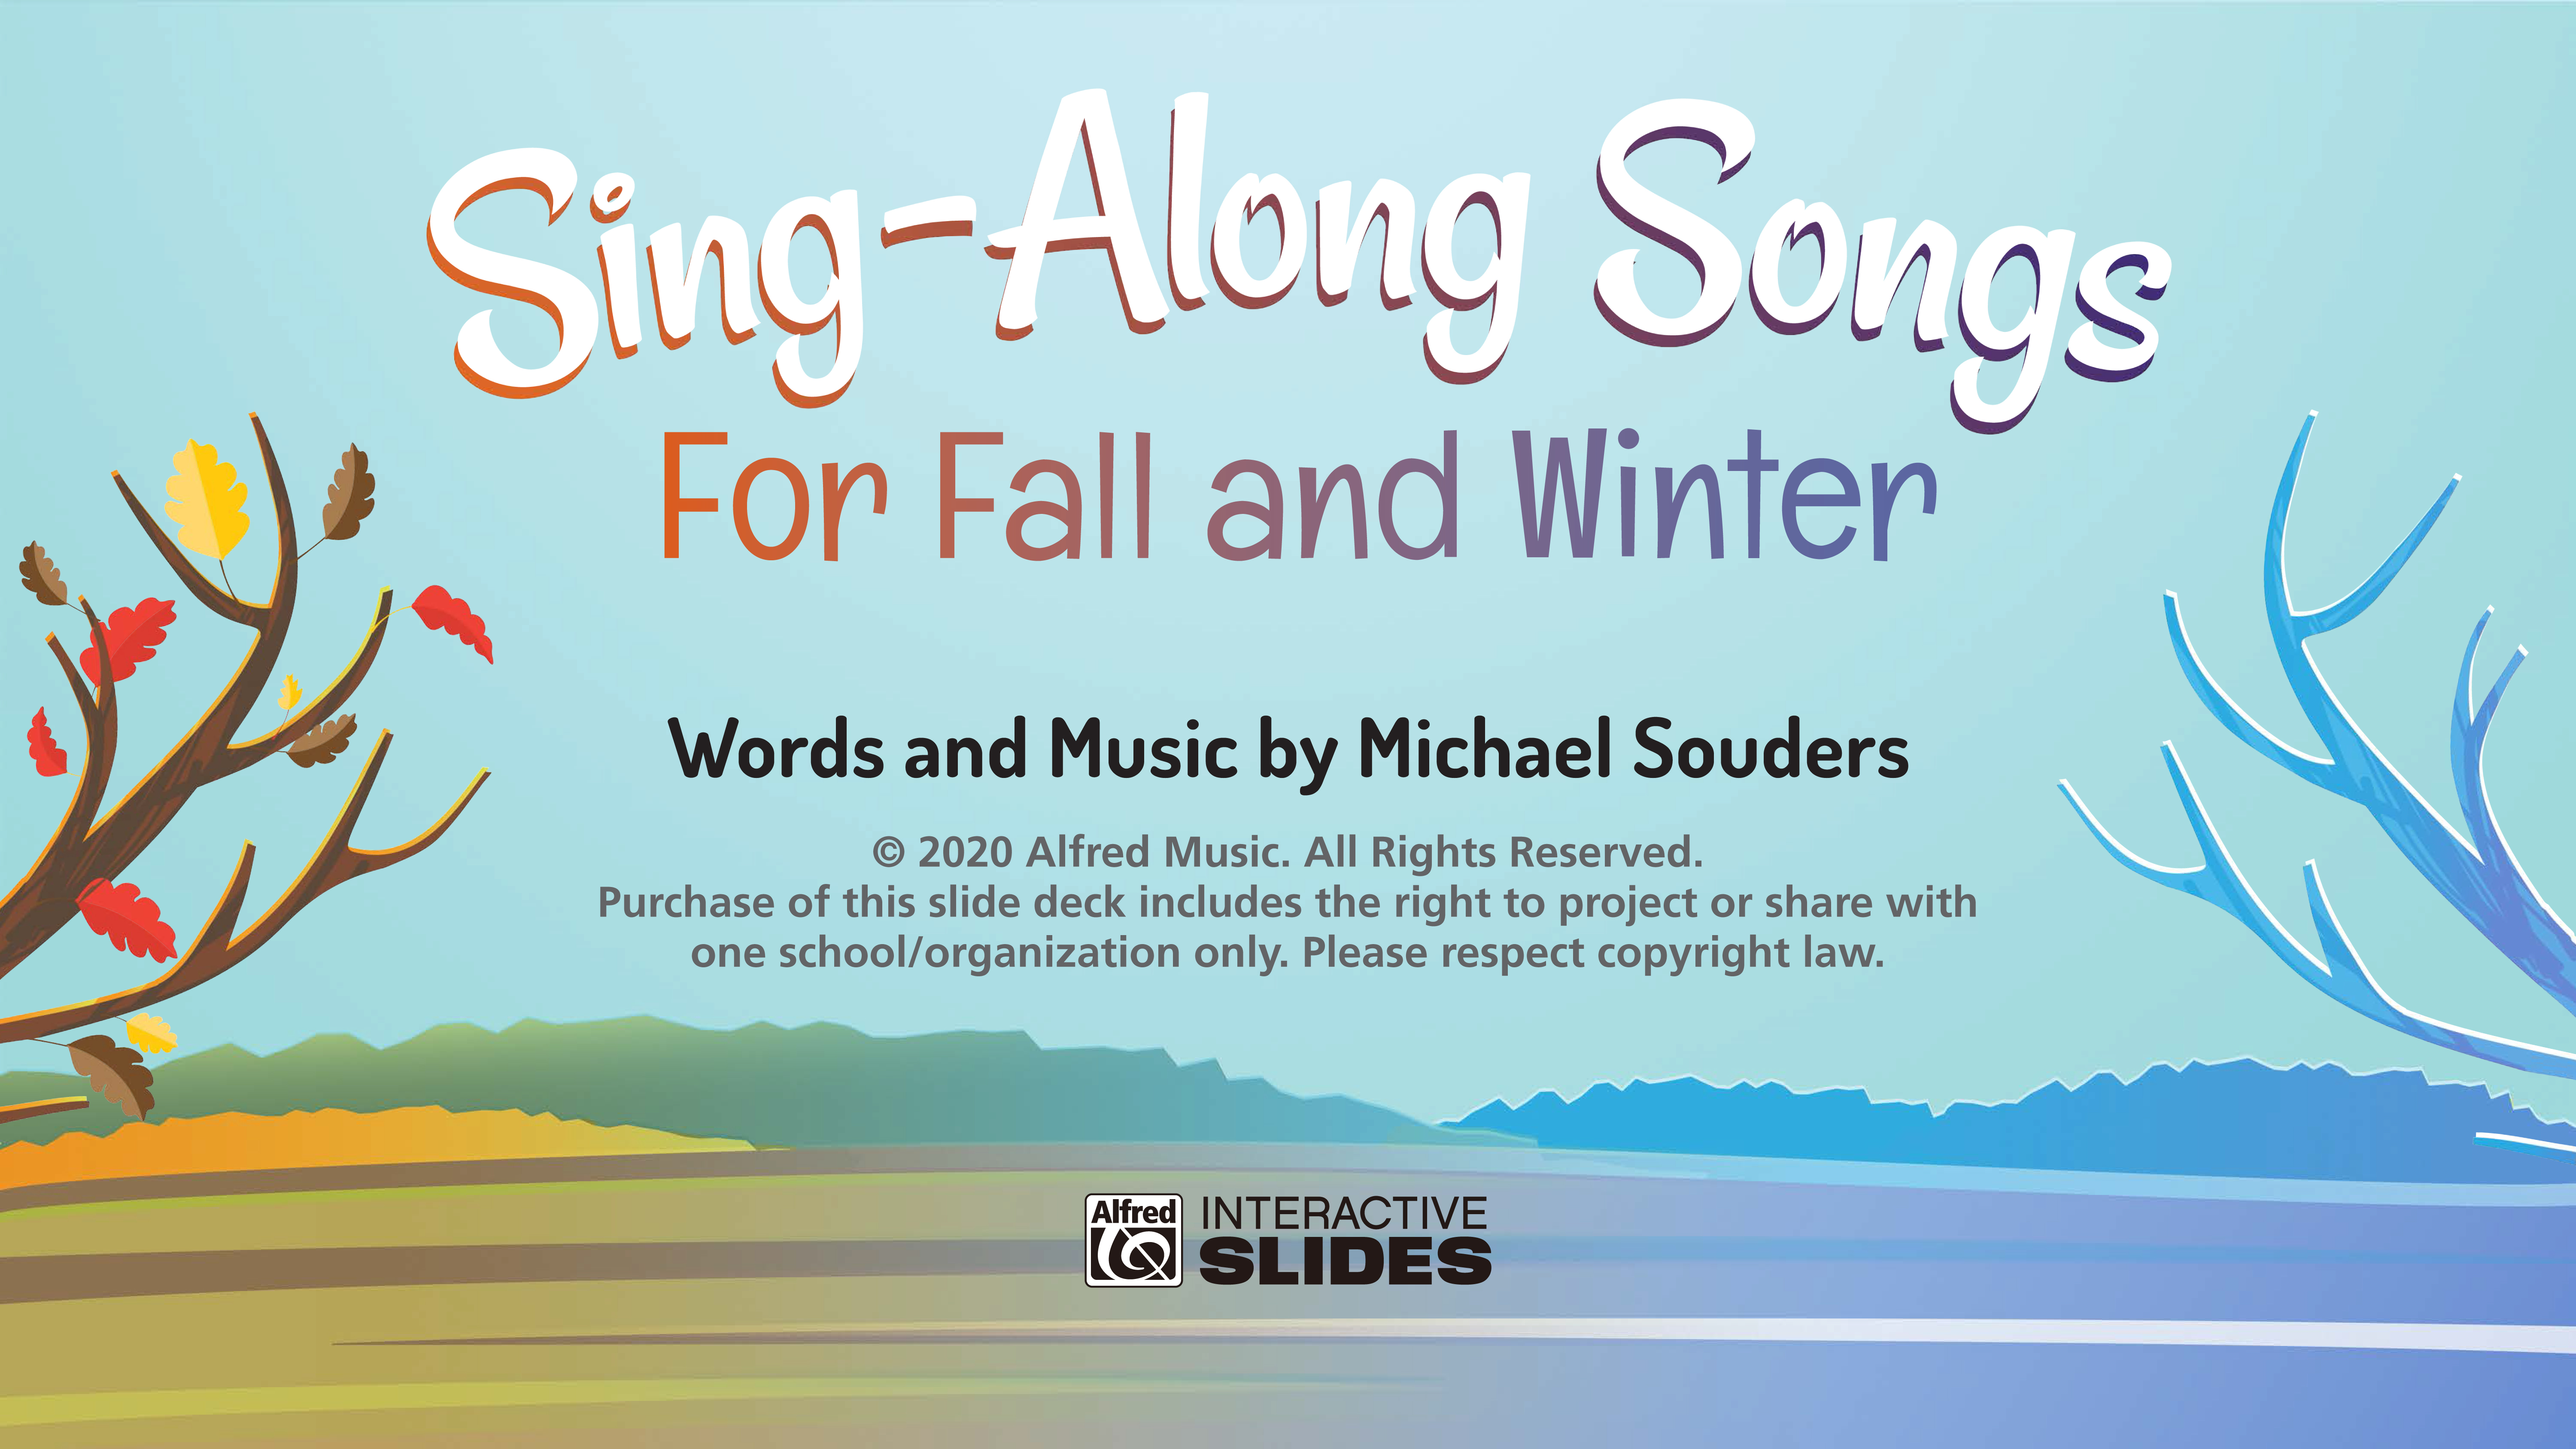 Sing-Along Slides for Fall and Winter